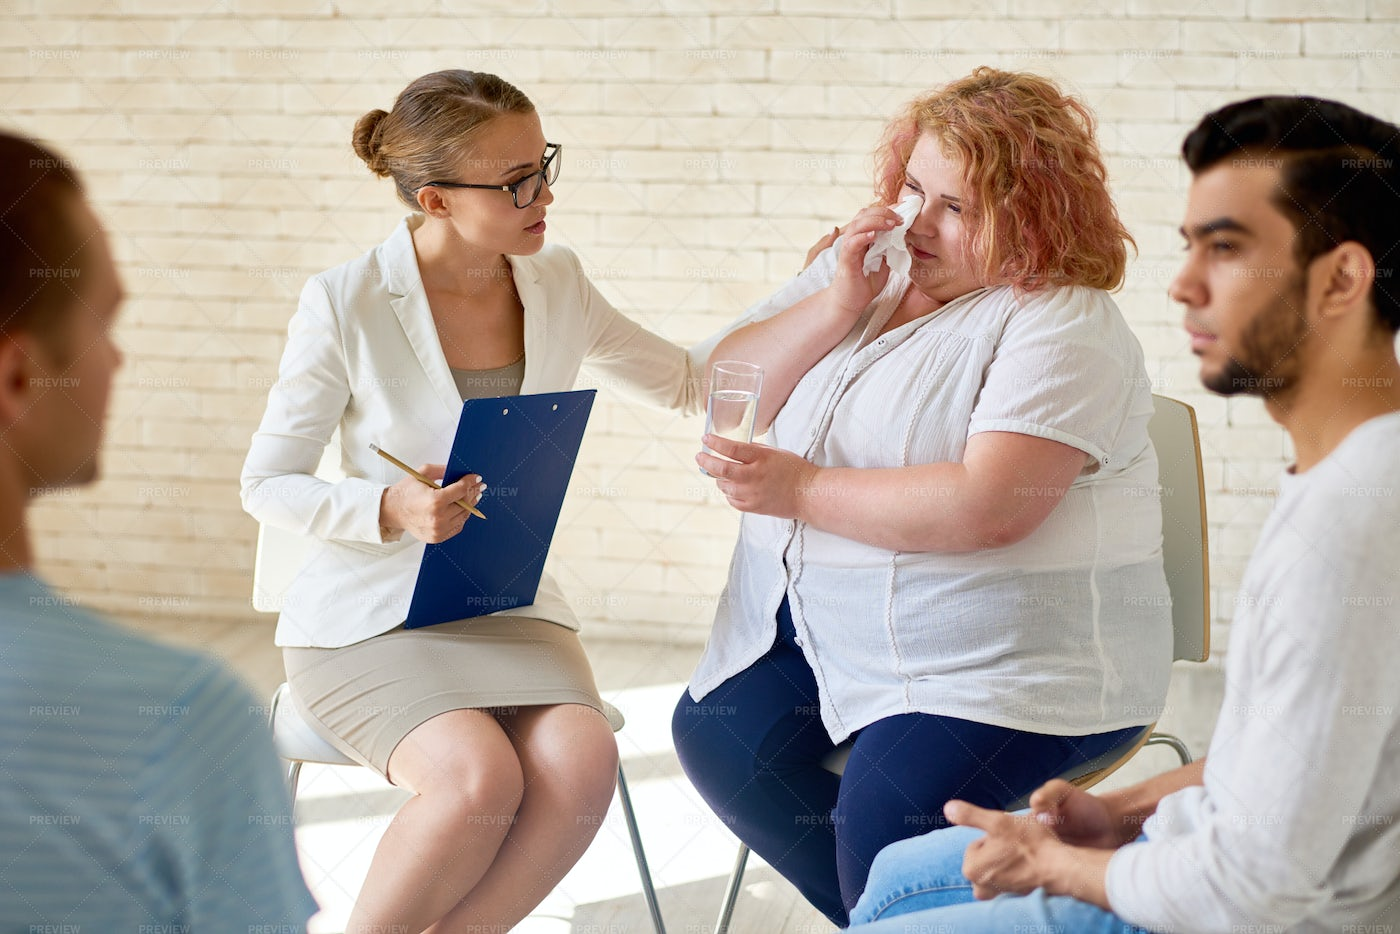 Obese Patient At Group Therapy...: Stock Photos